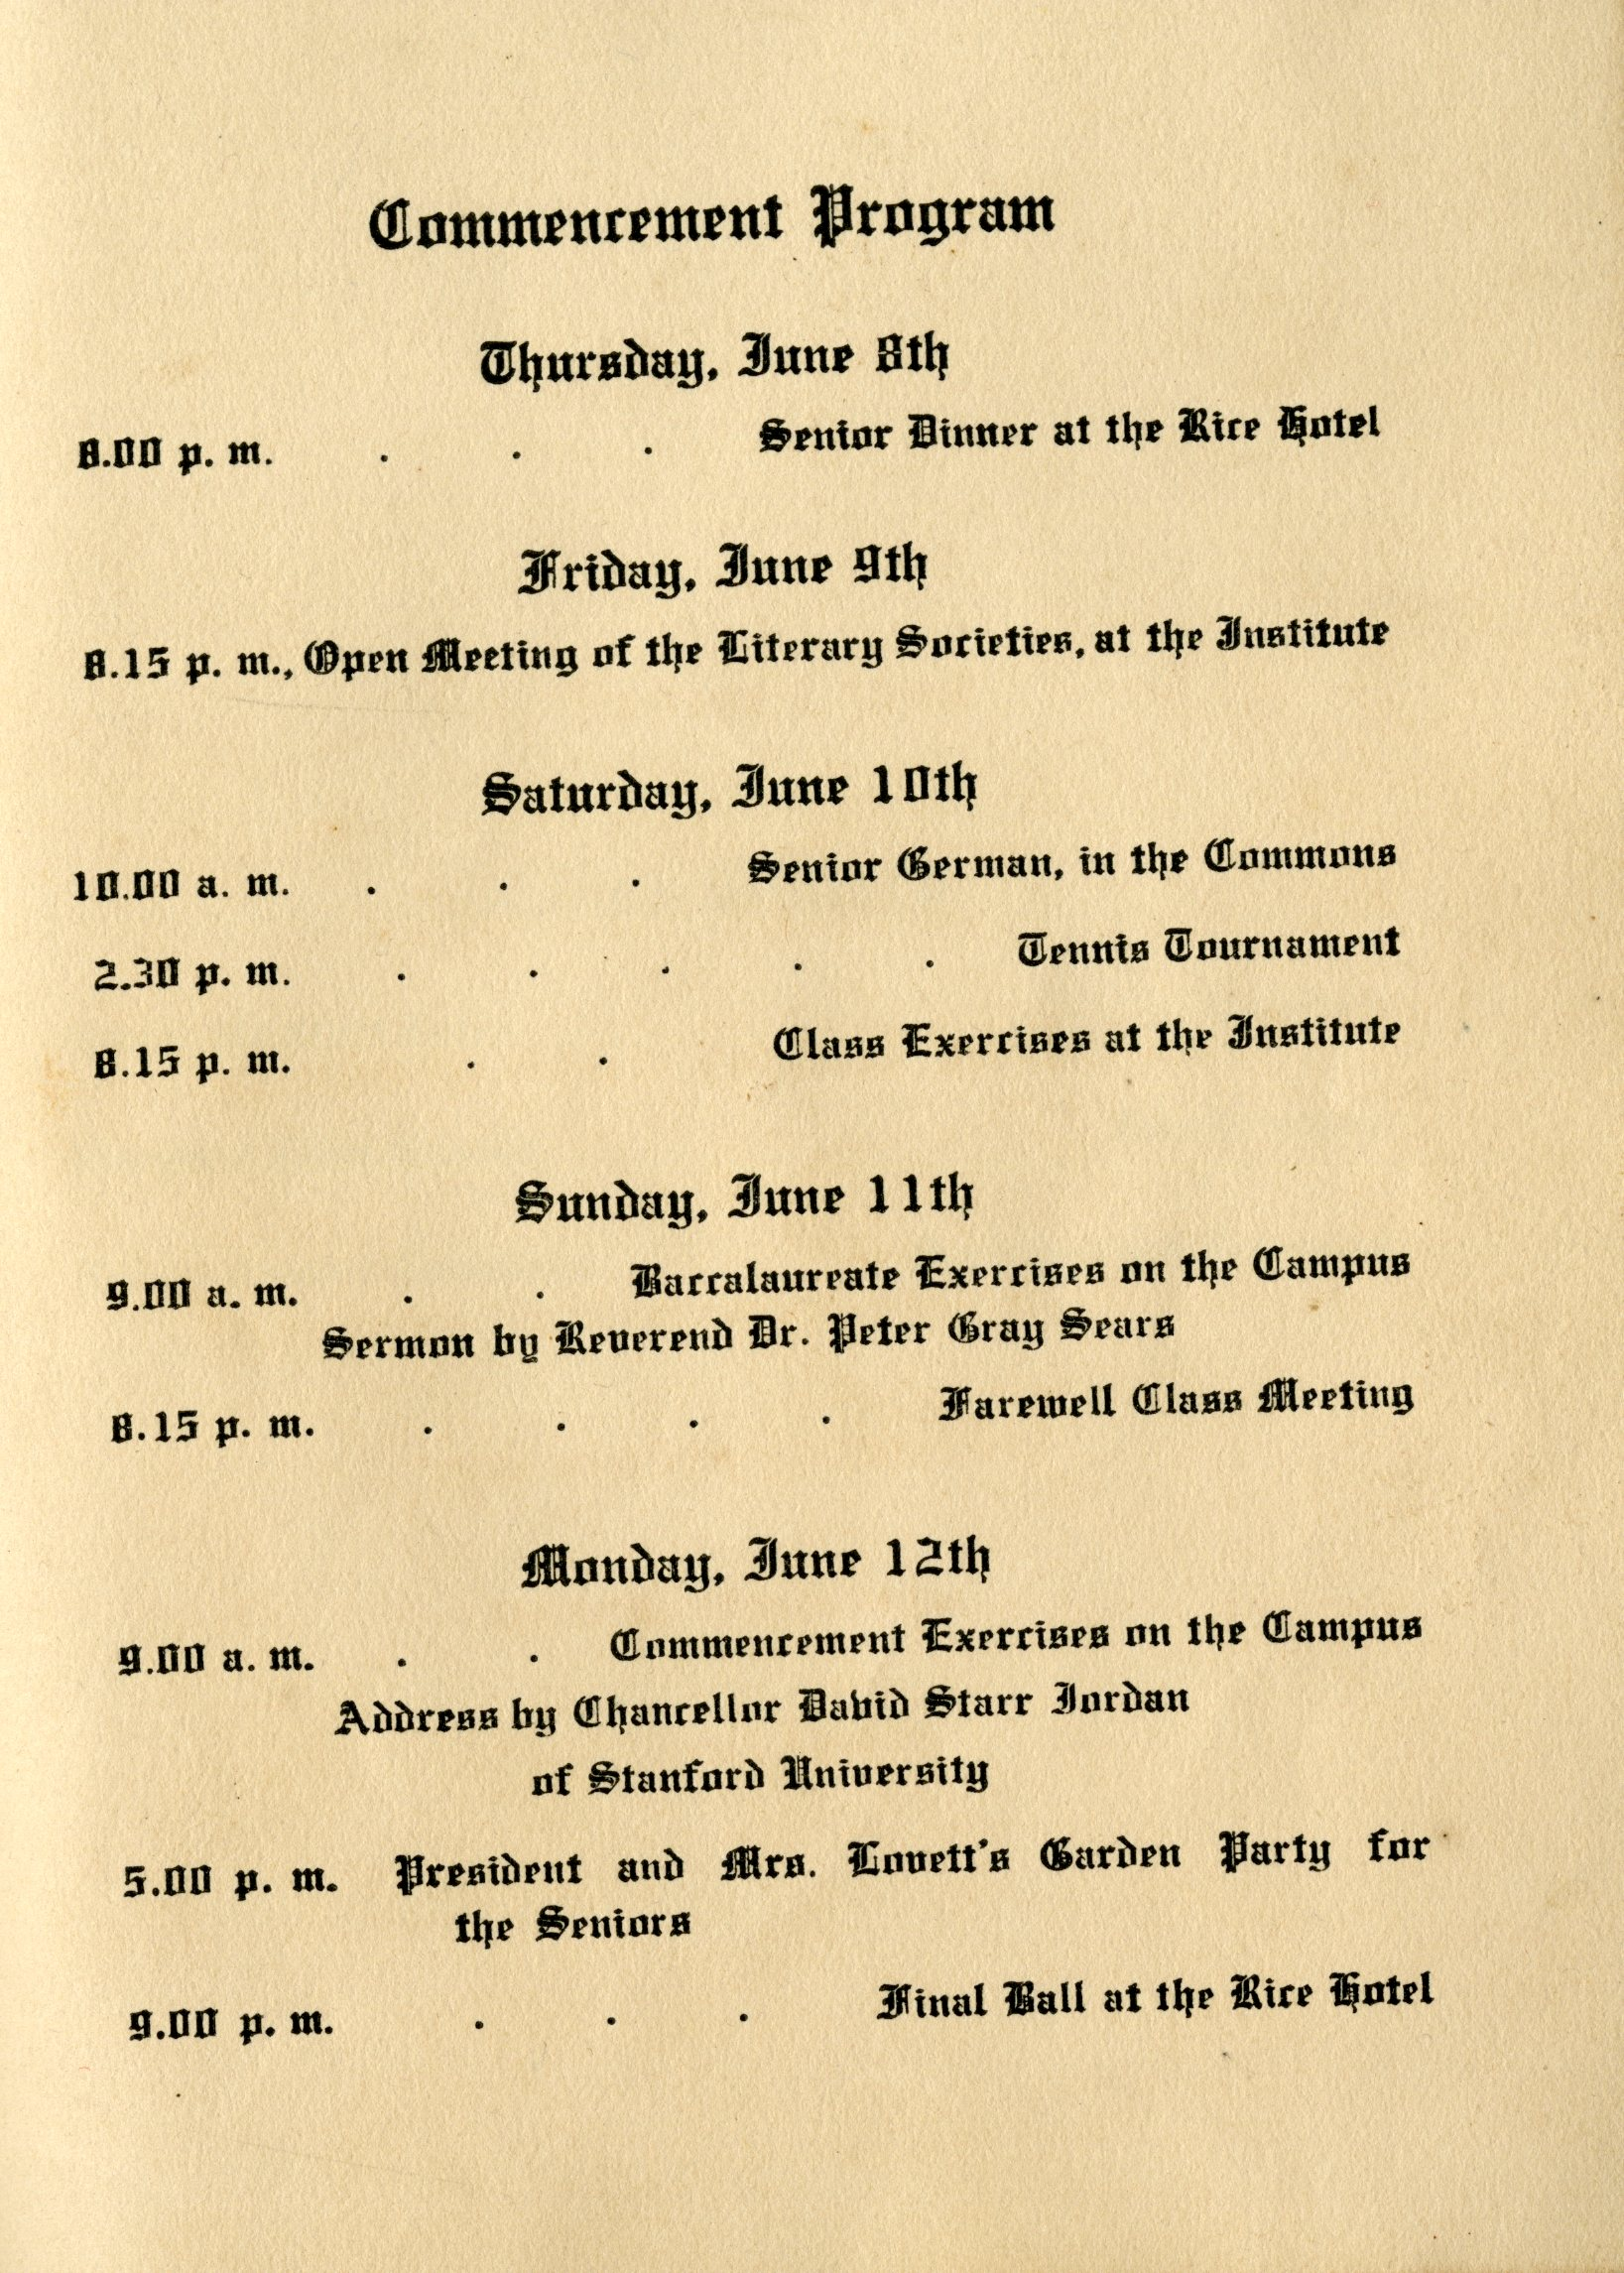 schedule of events for commencement 1916 rice history corner